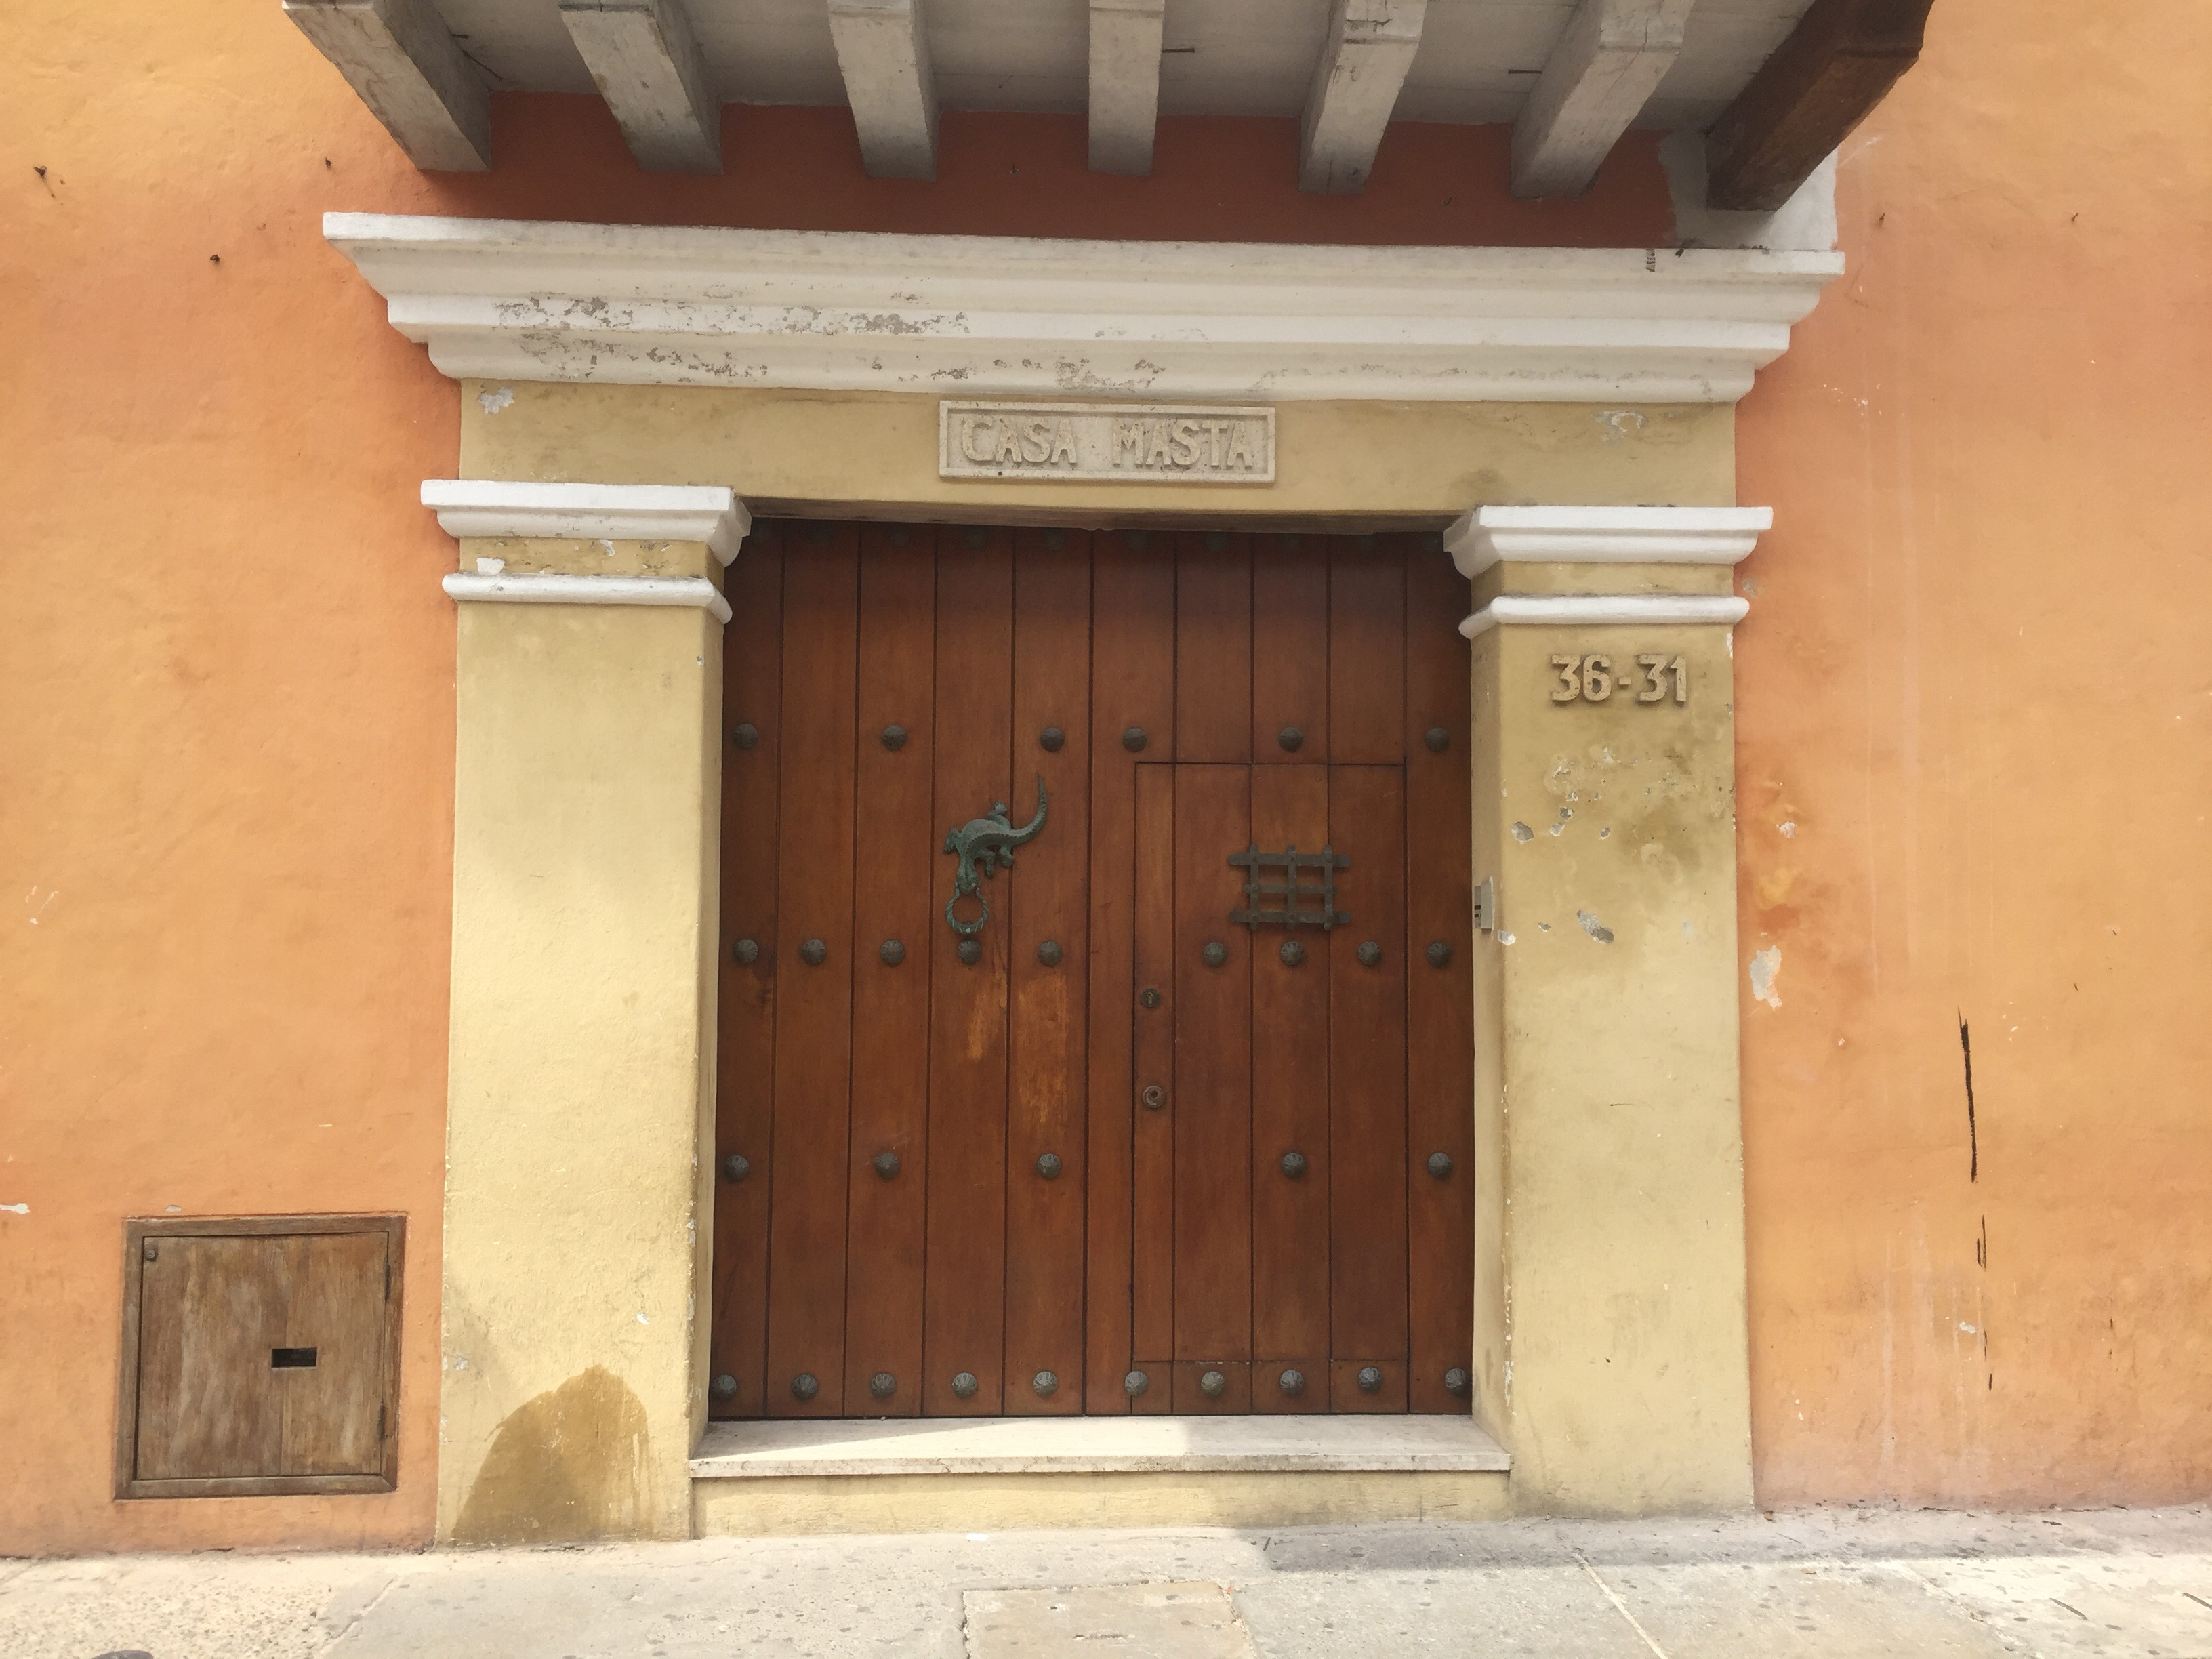 Many buildings had large wooden doors with smaller doors built inside and large knockers.